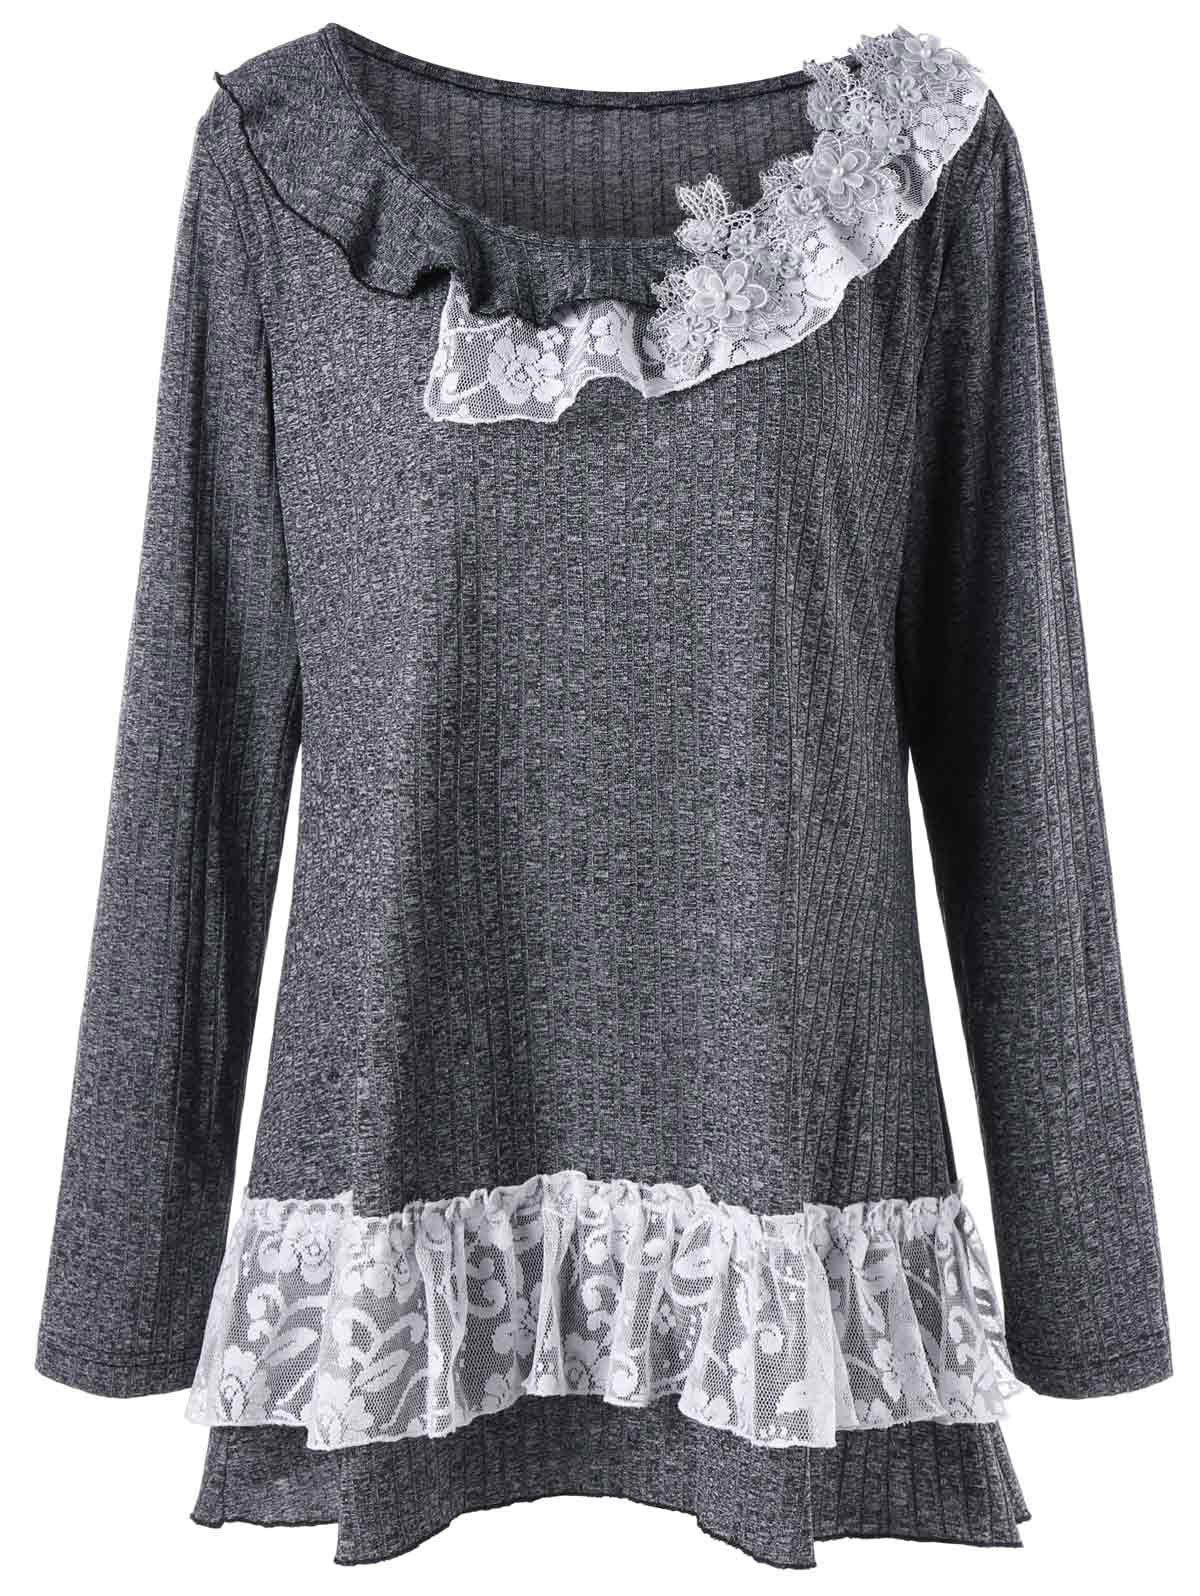 Plus Size Flounced Lace Trim Tunic TopWOMEN<br><br>Size: 3XL; Color: DEEP GRAY; Material: Polyester,Rayon; Shirt Length: Long; Sleeve Length: Full; Collar: Scoop Neck; Style: Casual; Season: Fall,Spring; Embellishment: Appliques,Lace; Pattern Type: Floral; Weight: 0.3100kg; Package Contents: 1 x Top;